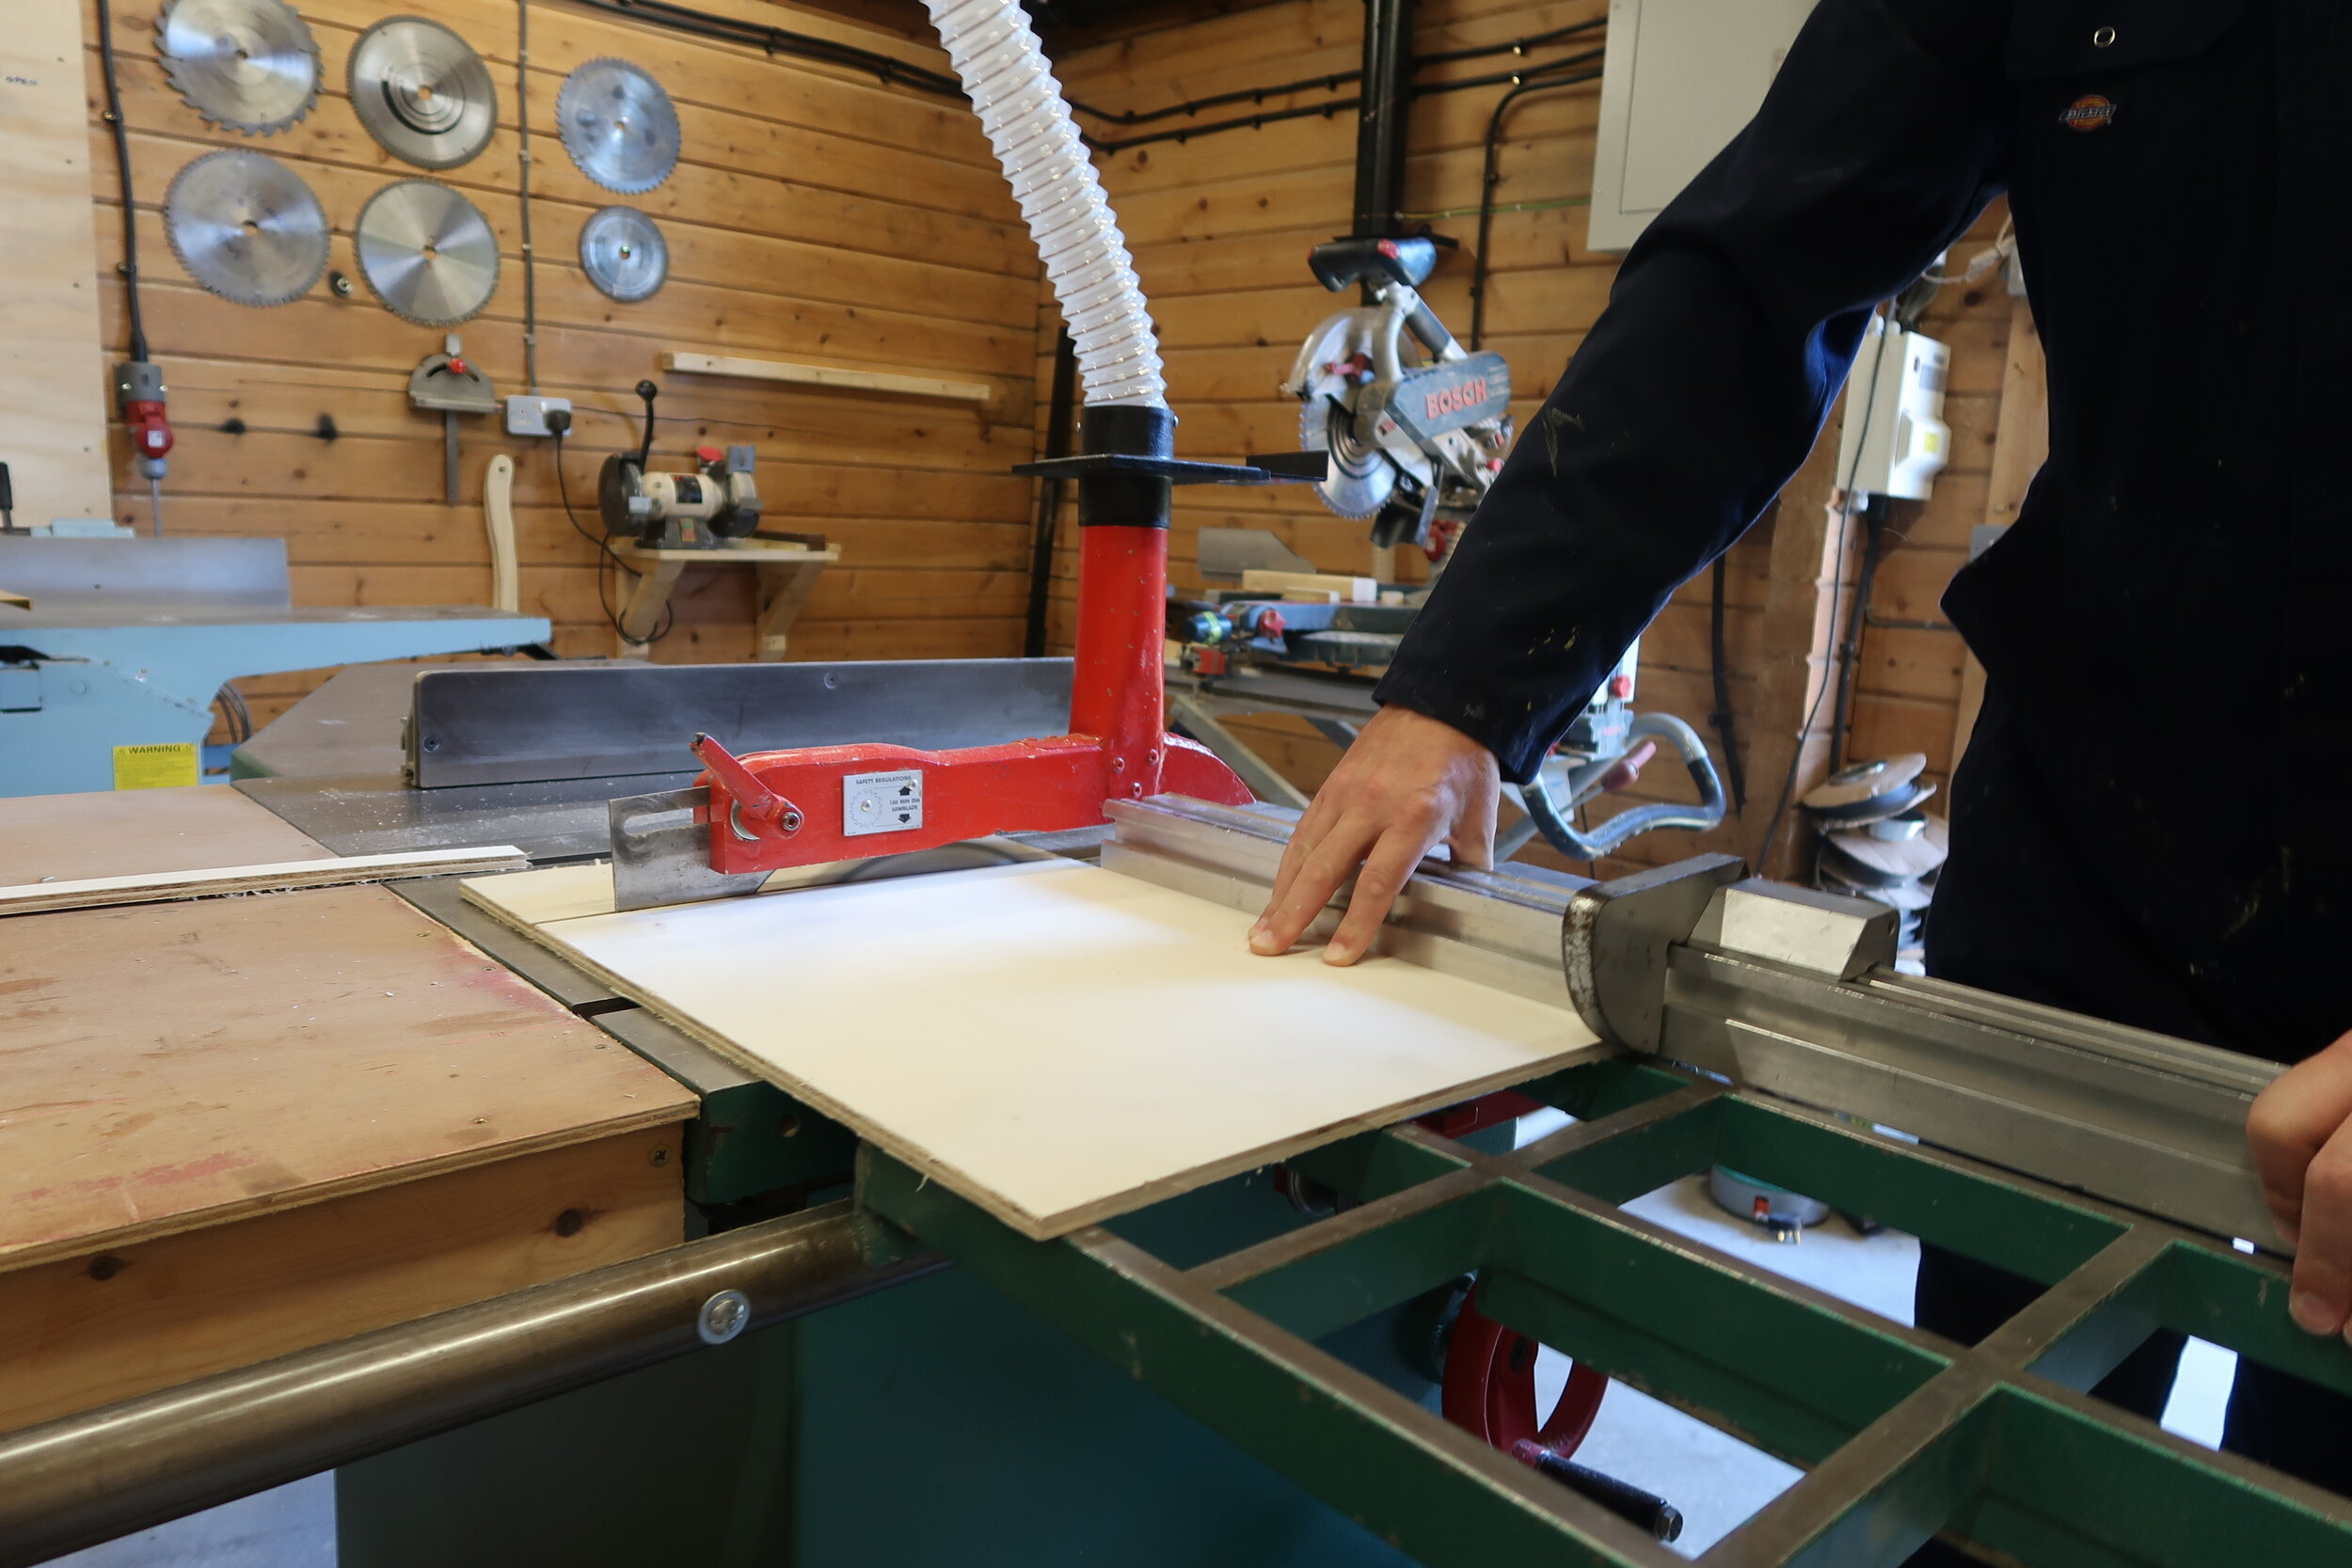 - Once the designs are approved its time to start building your new furniture. We aim to have projects ready for installation in 8-10 weeks, 6 weeks for individual pieces of free standing furniture. Each piece is crafted from certified sustainable timber using traditional cabinet making techniques, any wall panelling or furniture in bathrooms or near moisture sources is constructed from completely waterproof material.